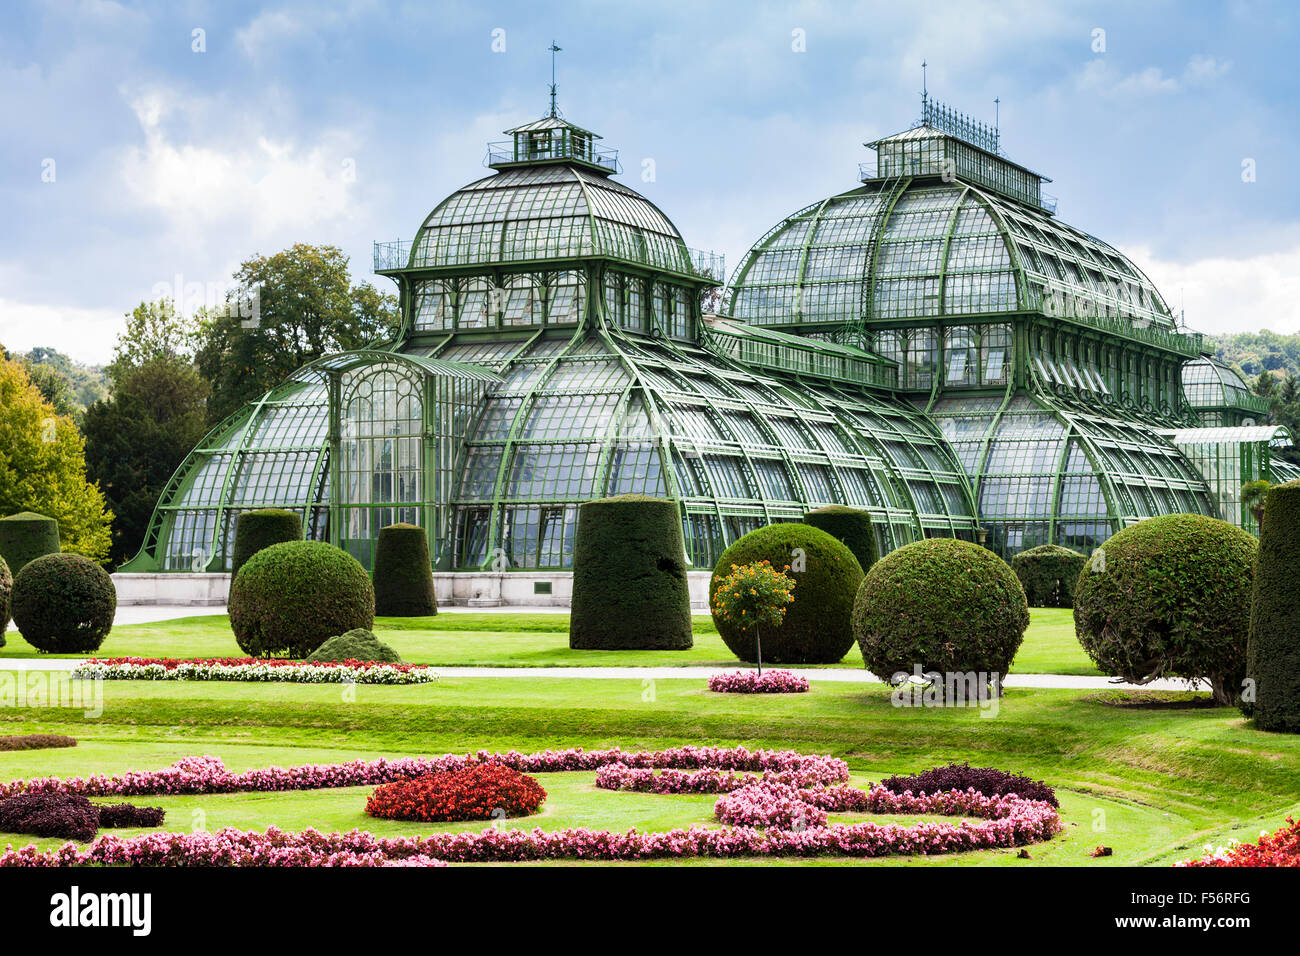 travel to Vienna city - Palm House, large greenhouse in garden of Schloss Schonbrunn palace, Vienna, Austria - Stock Image